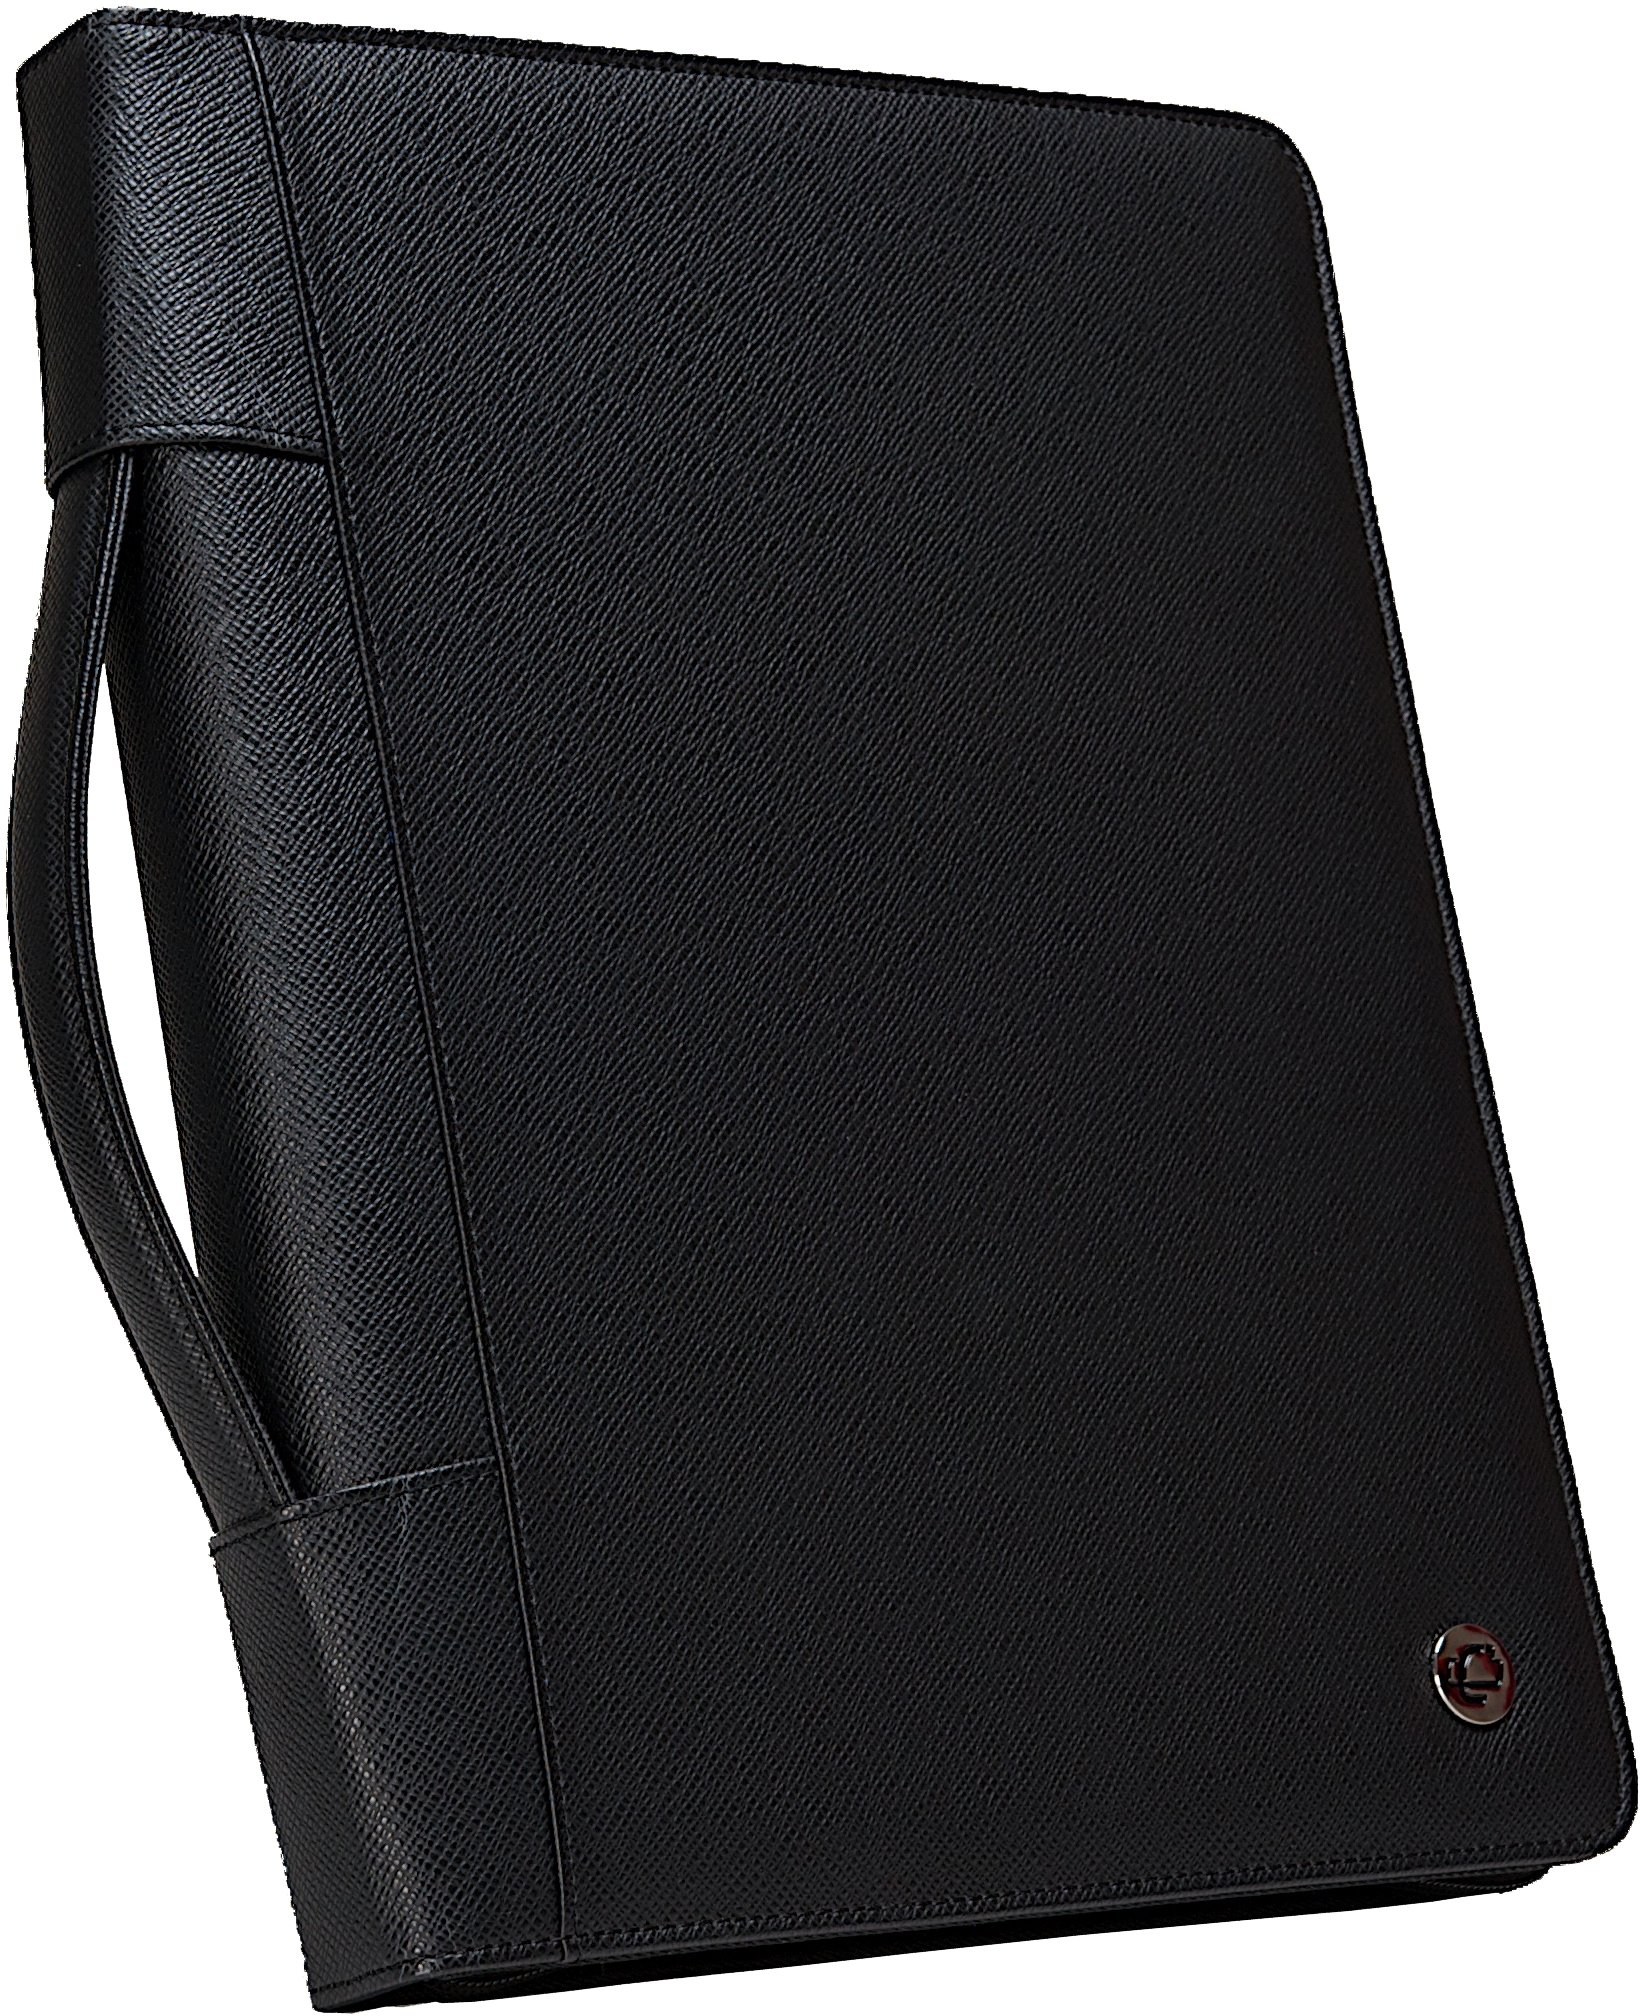 Case-it Executive Zippered Padfolio with Removable 3-Ring Binder and Letter Size Writing Pad, Black, PAD-40